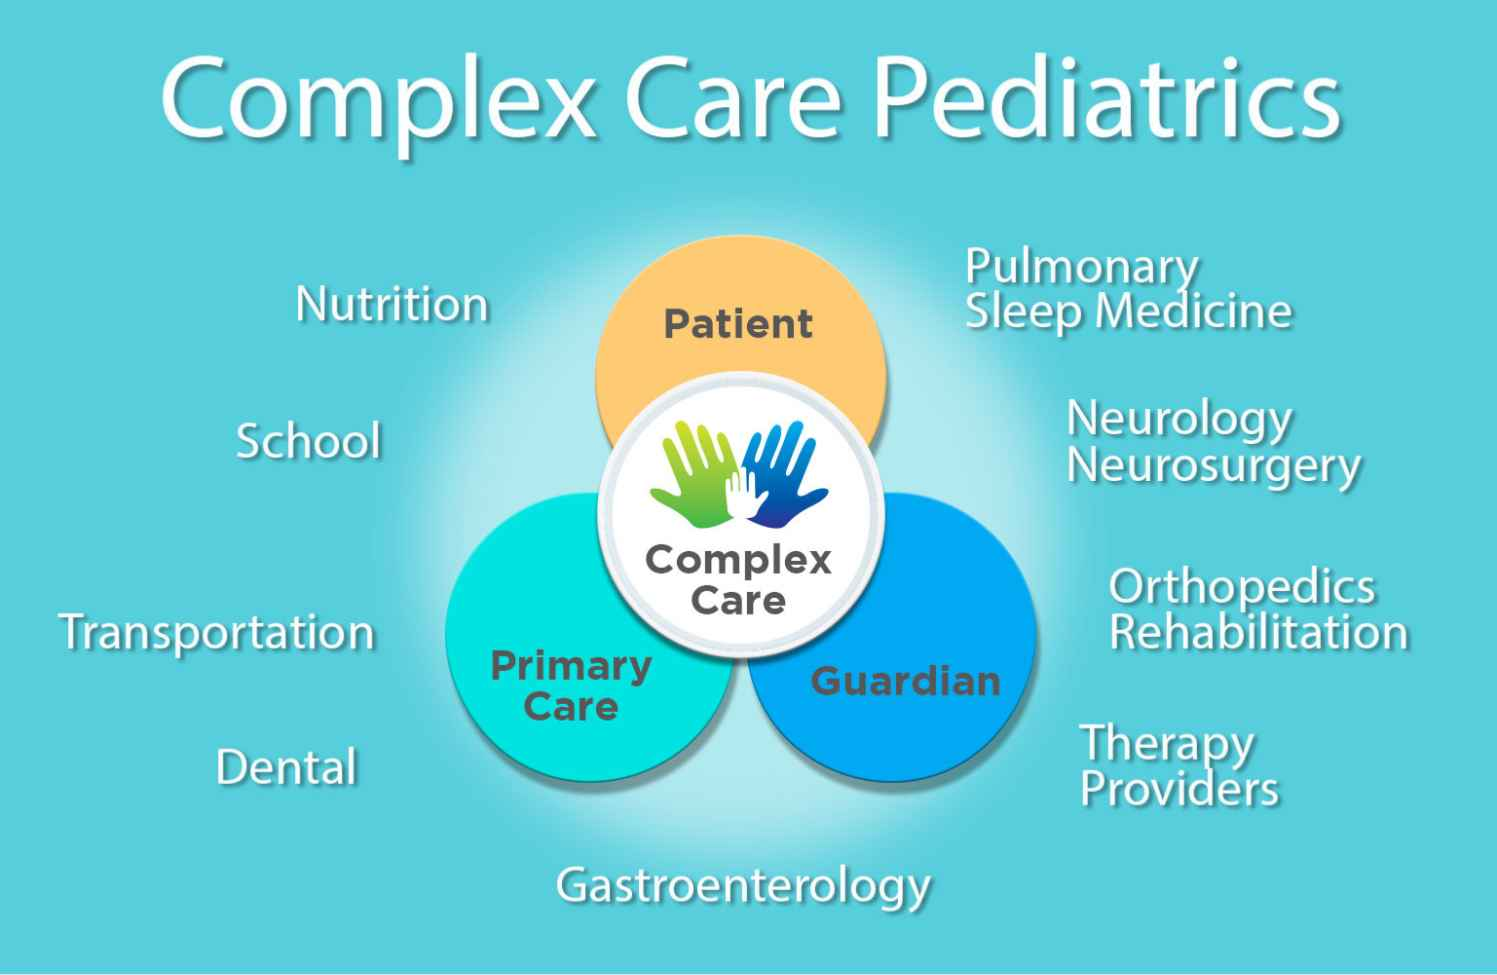 Complex Care Pediatrics at Gillette